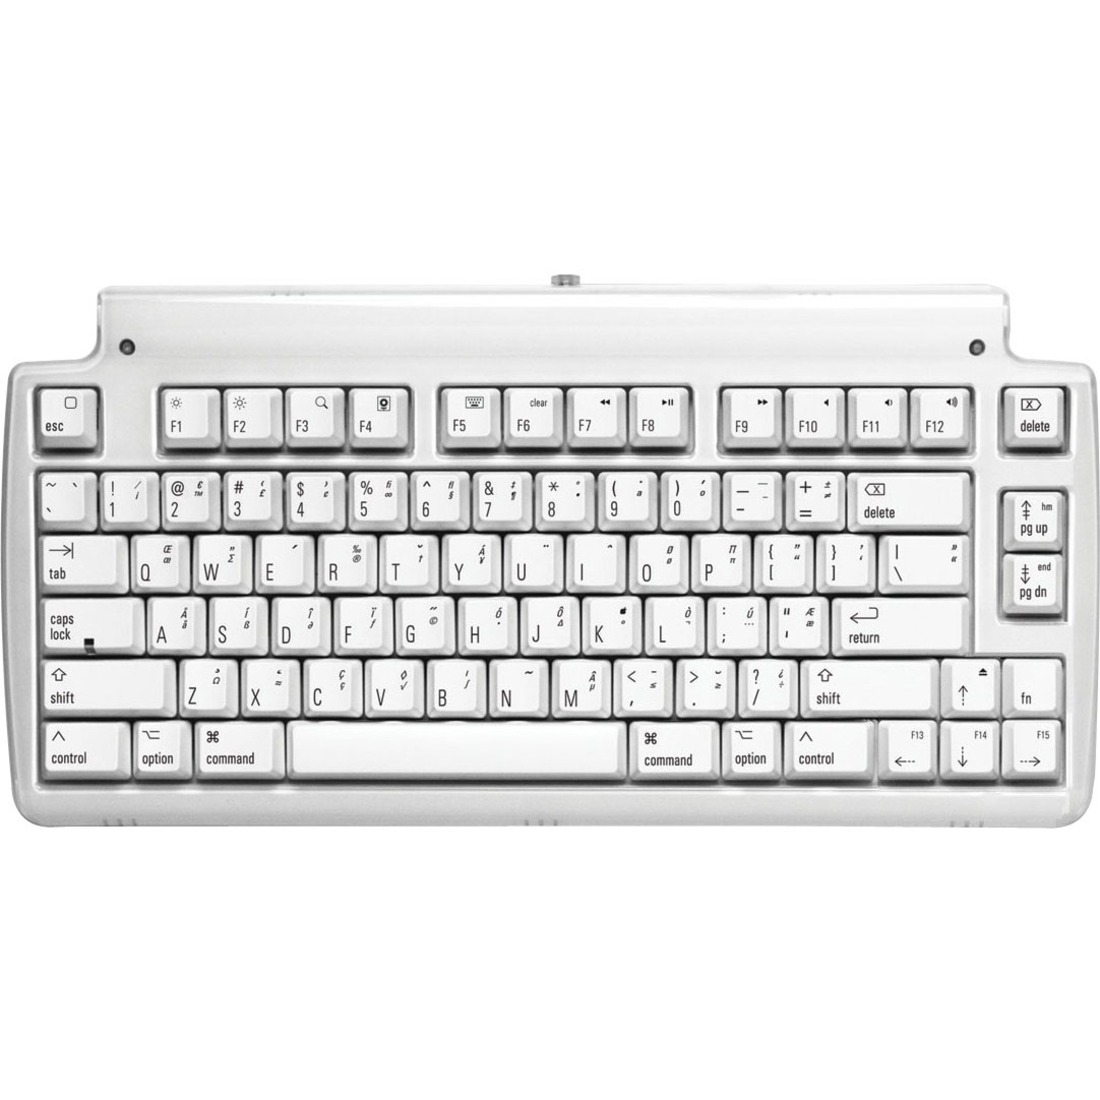 Matias Mini Tactile Pro Mechanical Switch Keyboard for Mac - Cable  Connectivity - USB 2 0 Interface - English (US) - Compatible with Notebook  (Mac) -